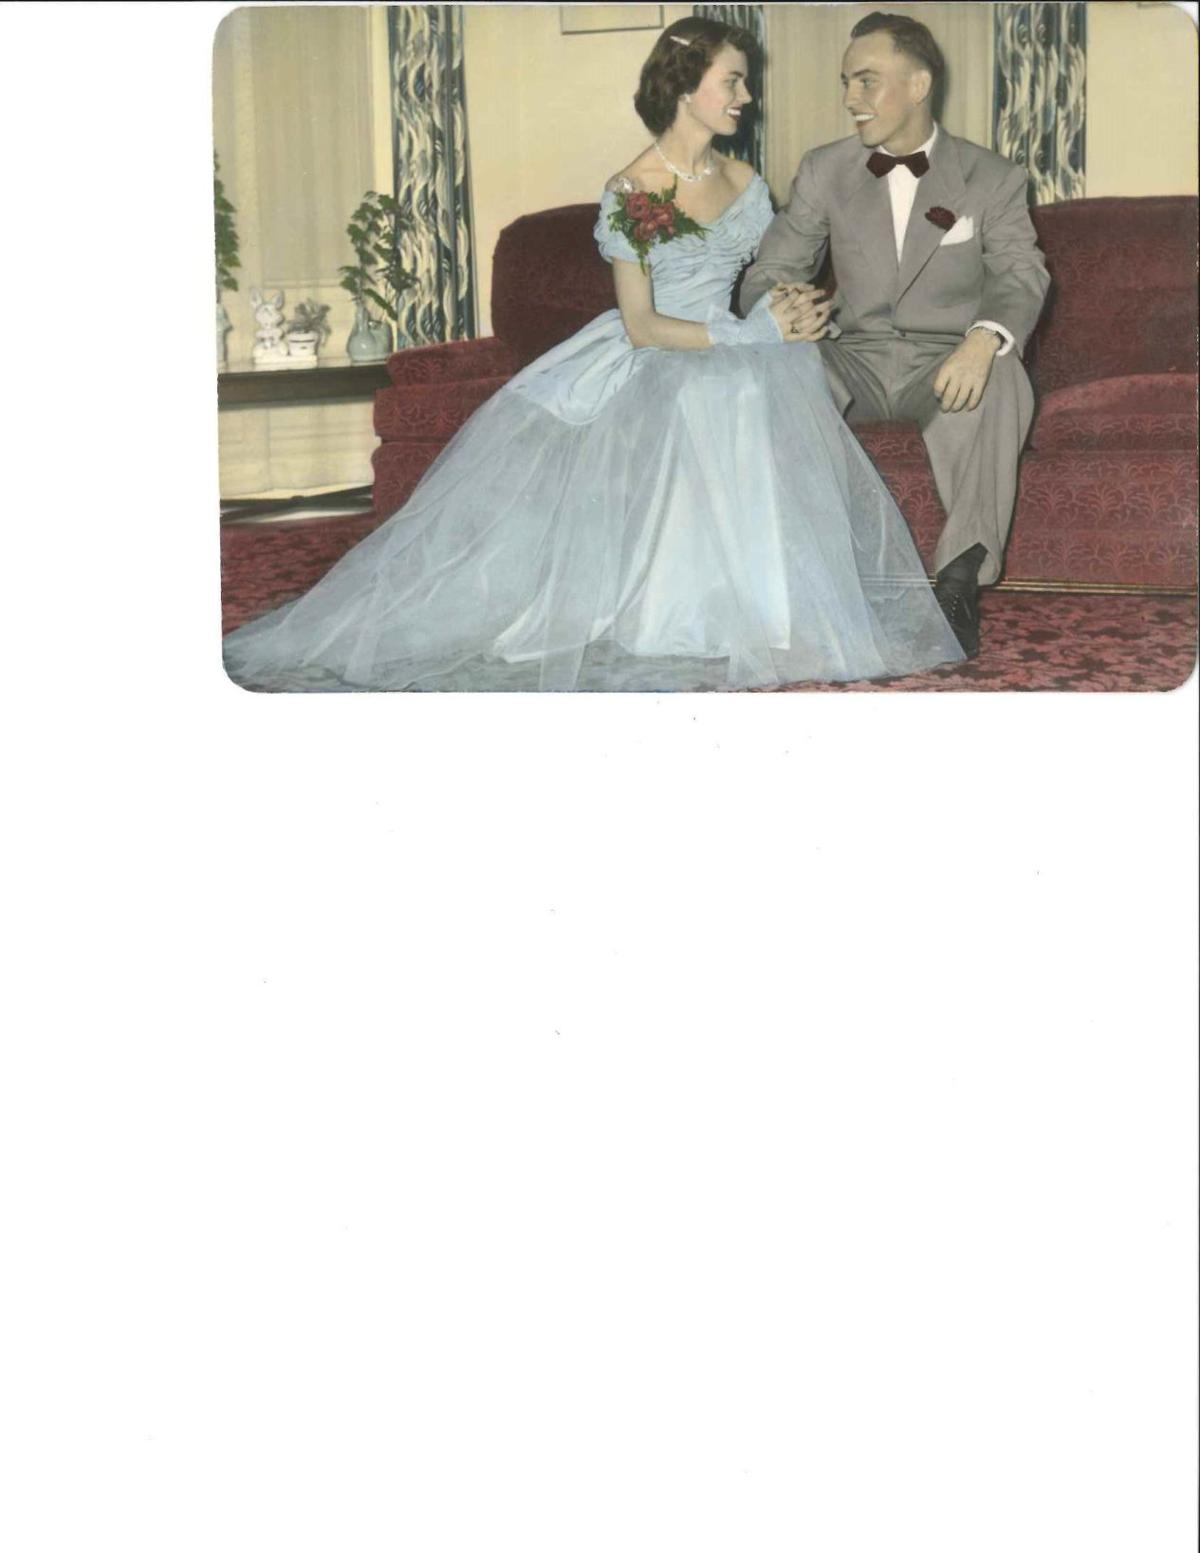 """Still """"Unforgettable"""" after 65 years of Wedded Bliss for Bob & Pat Launder~"""